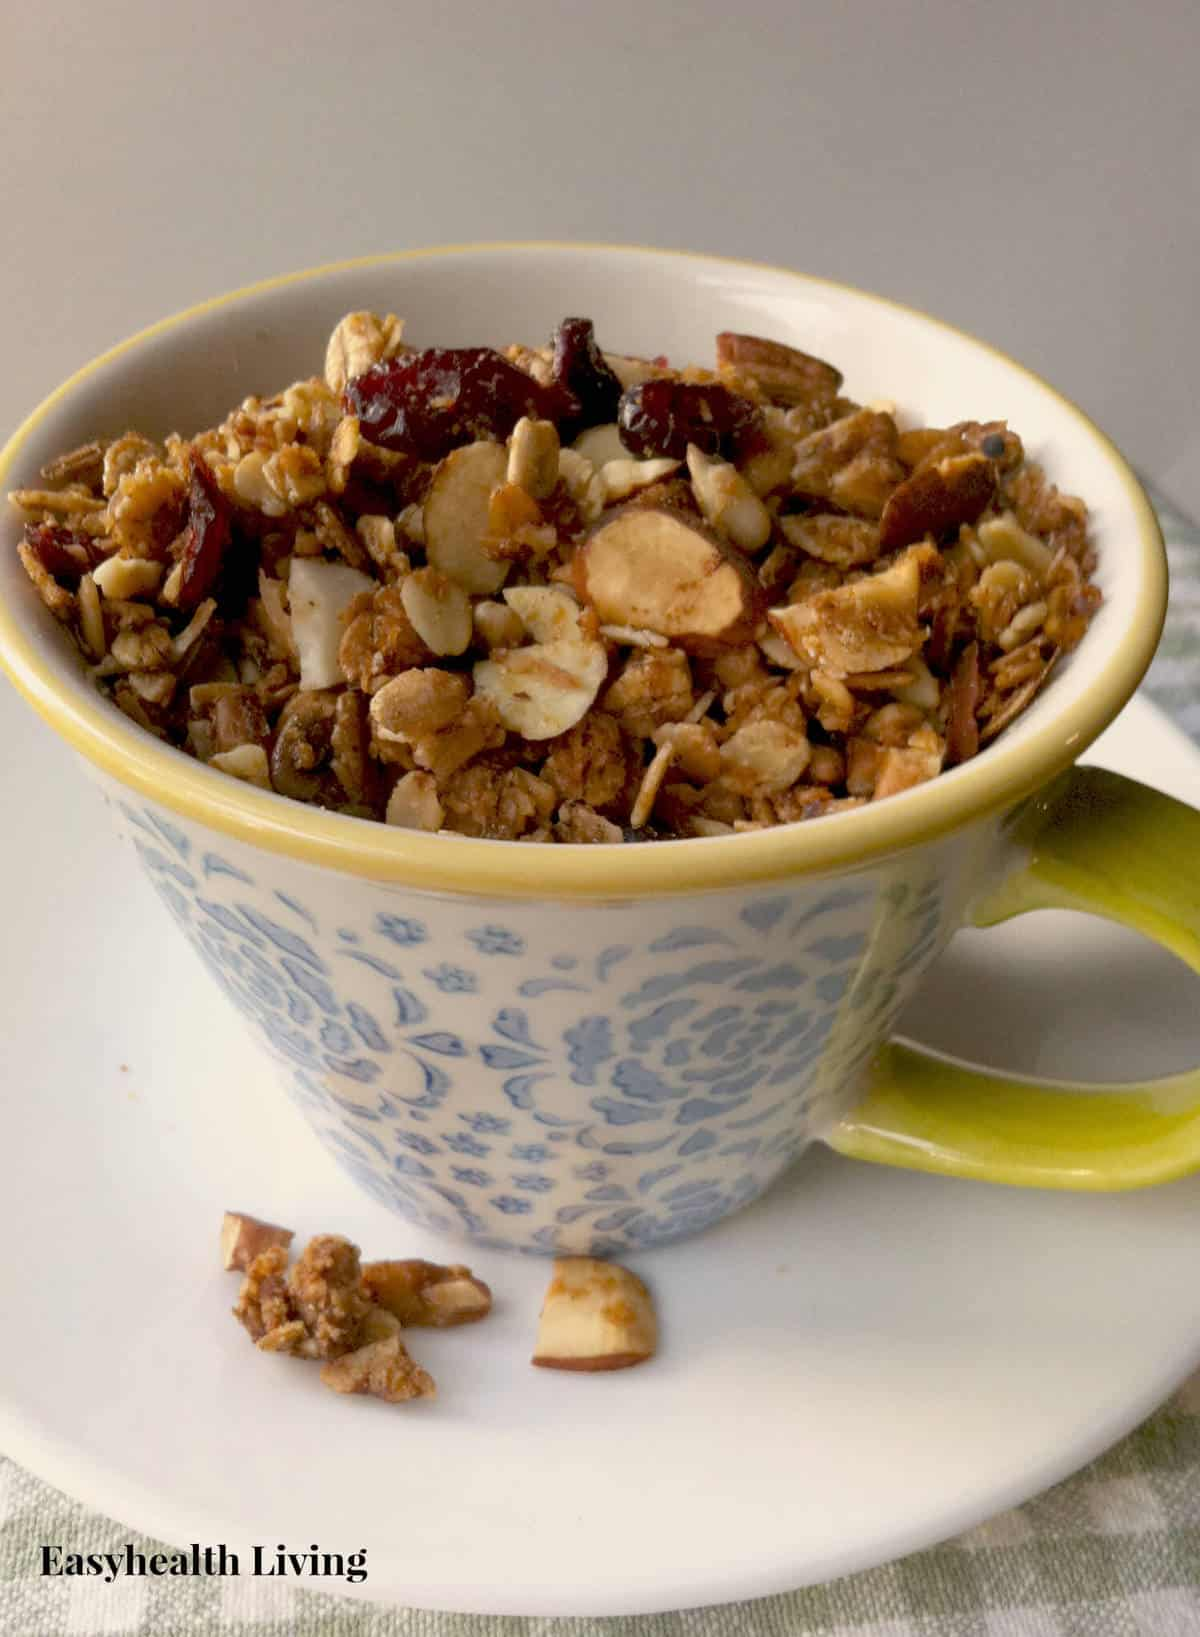 A delicious granola made of all your favorite nuts and seeds- flavored with cinnamon, honey and brown sugar.  Bake a batch to share!